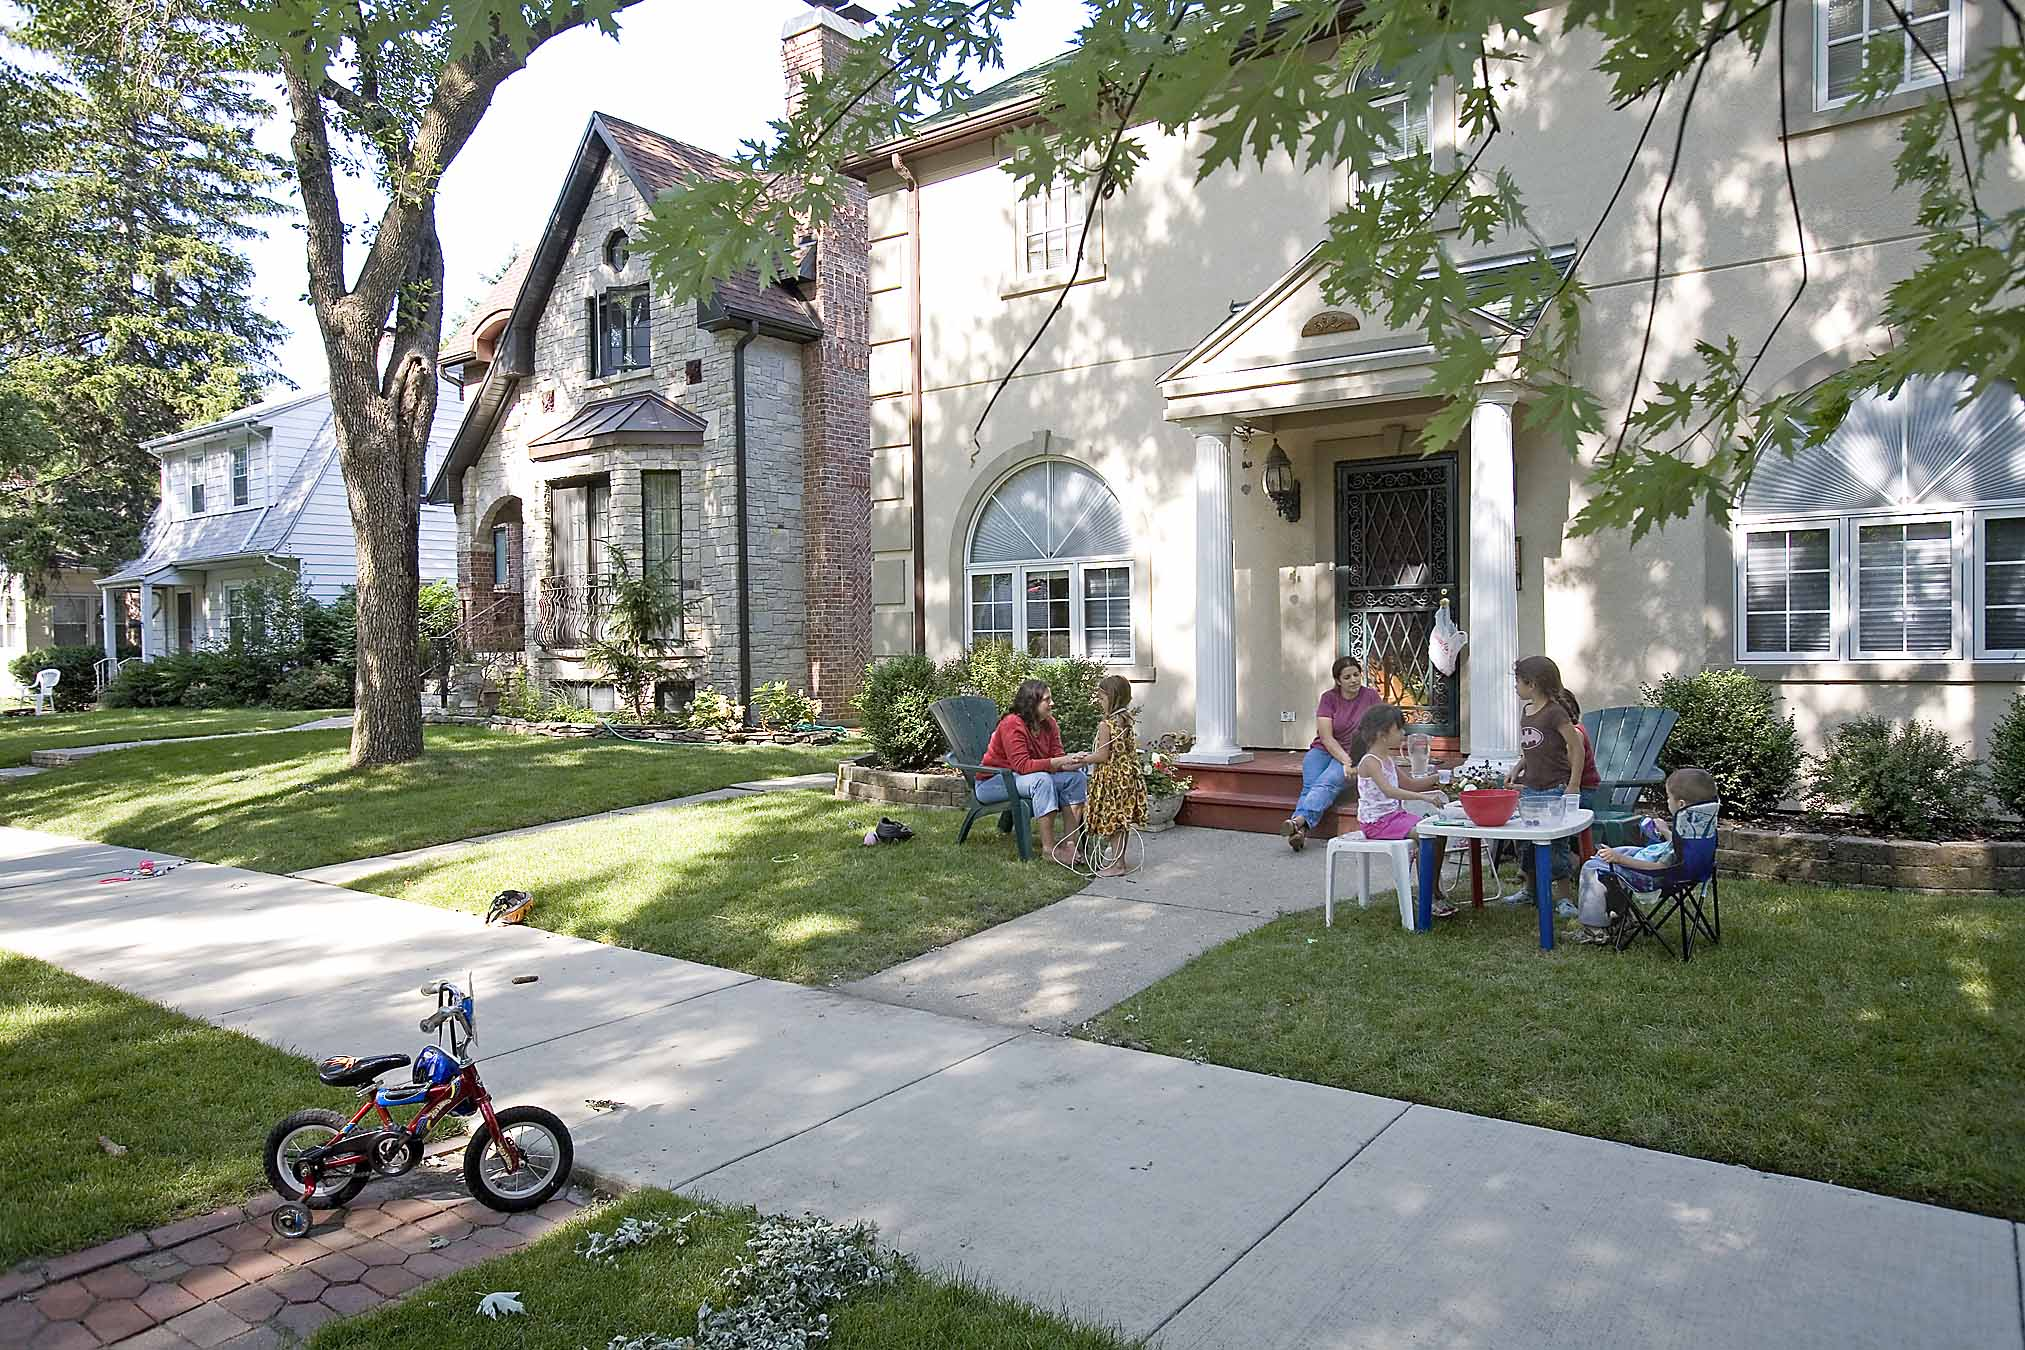 It's a perfect day for lemonade on the 5800 block of North Kostner Avenue, among the wide lawns and spacious homes of Sauganash.